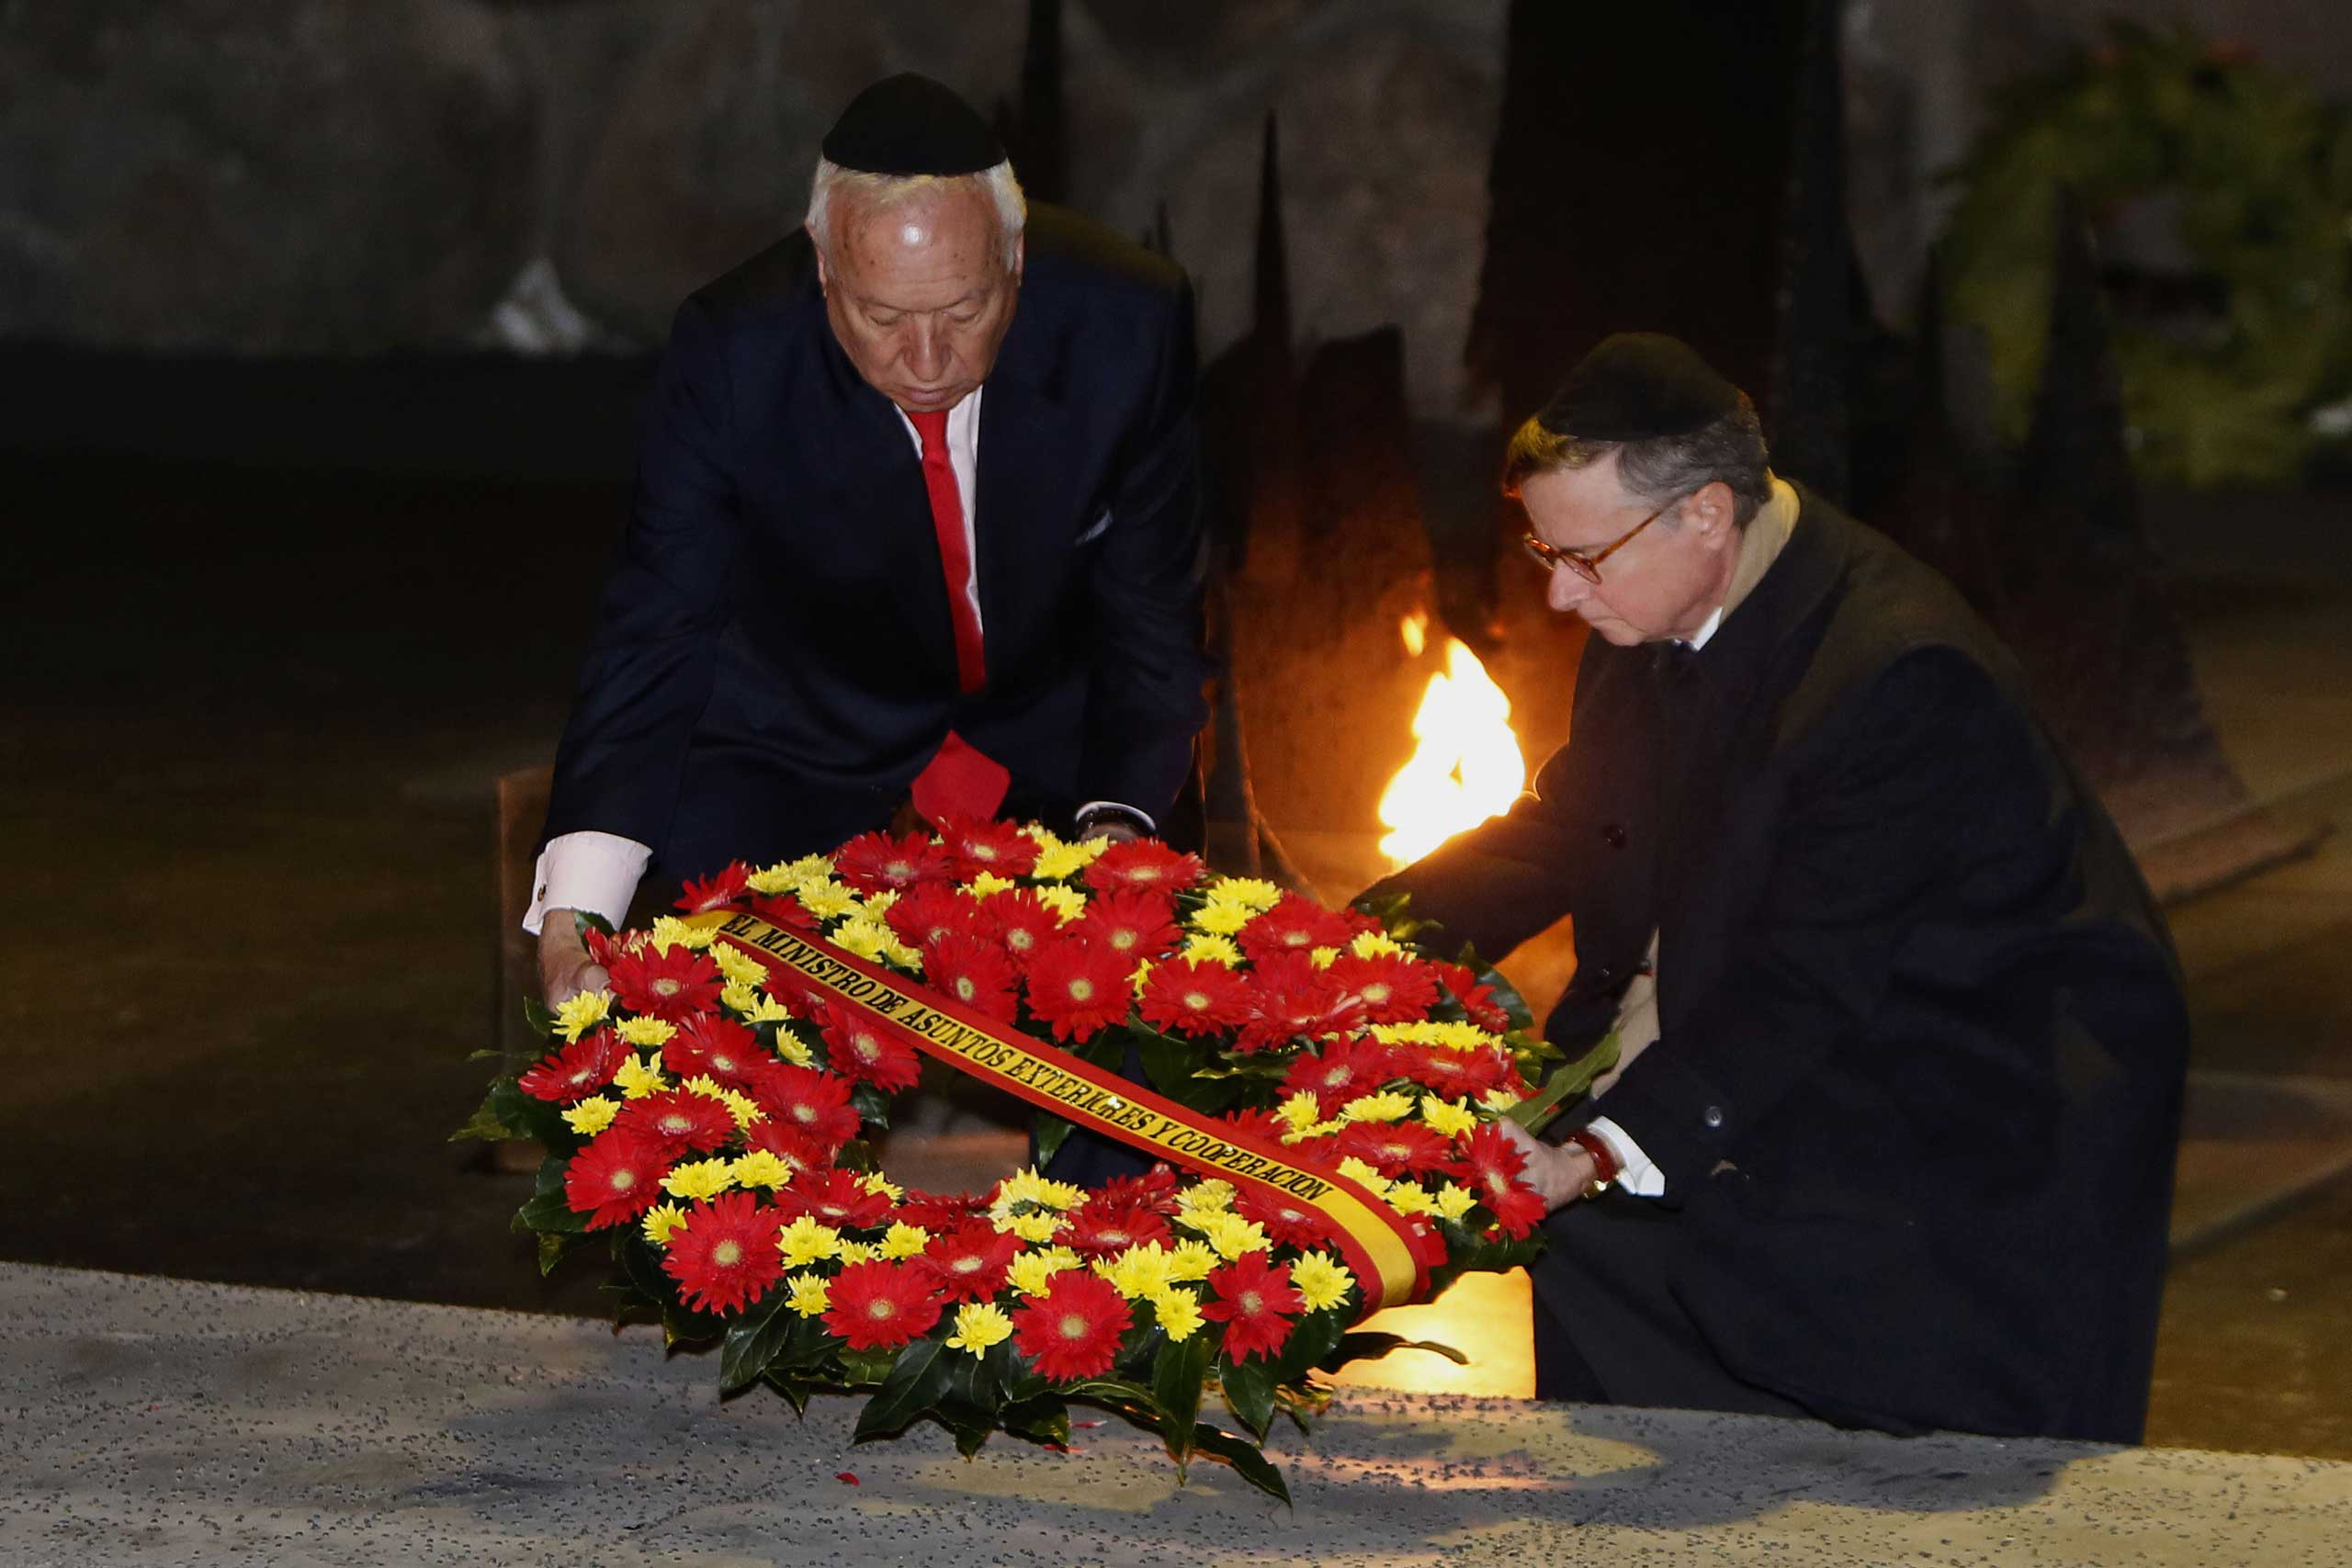 Spanish Foreign Minister Jose Manuel Garcia-Margallo (L) lays a wreath at the Hall of Remembrance on Jan. 14, 2015, during his visit to the Yad Vashem Holocaust Memorial museum in Jerusalem that commemorates the six million Jews killed by the Nazis during World War II.